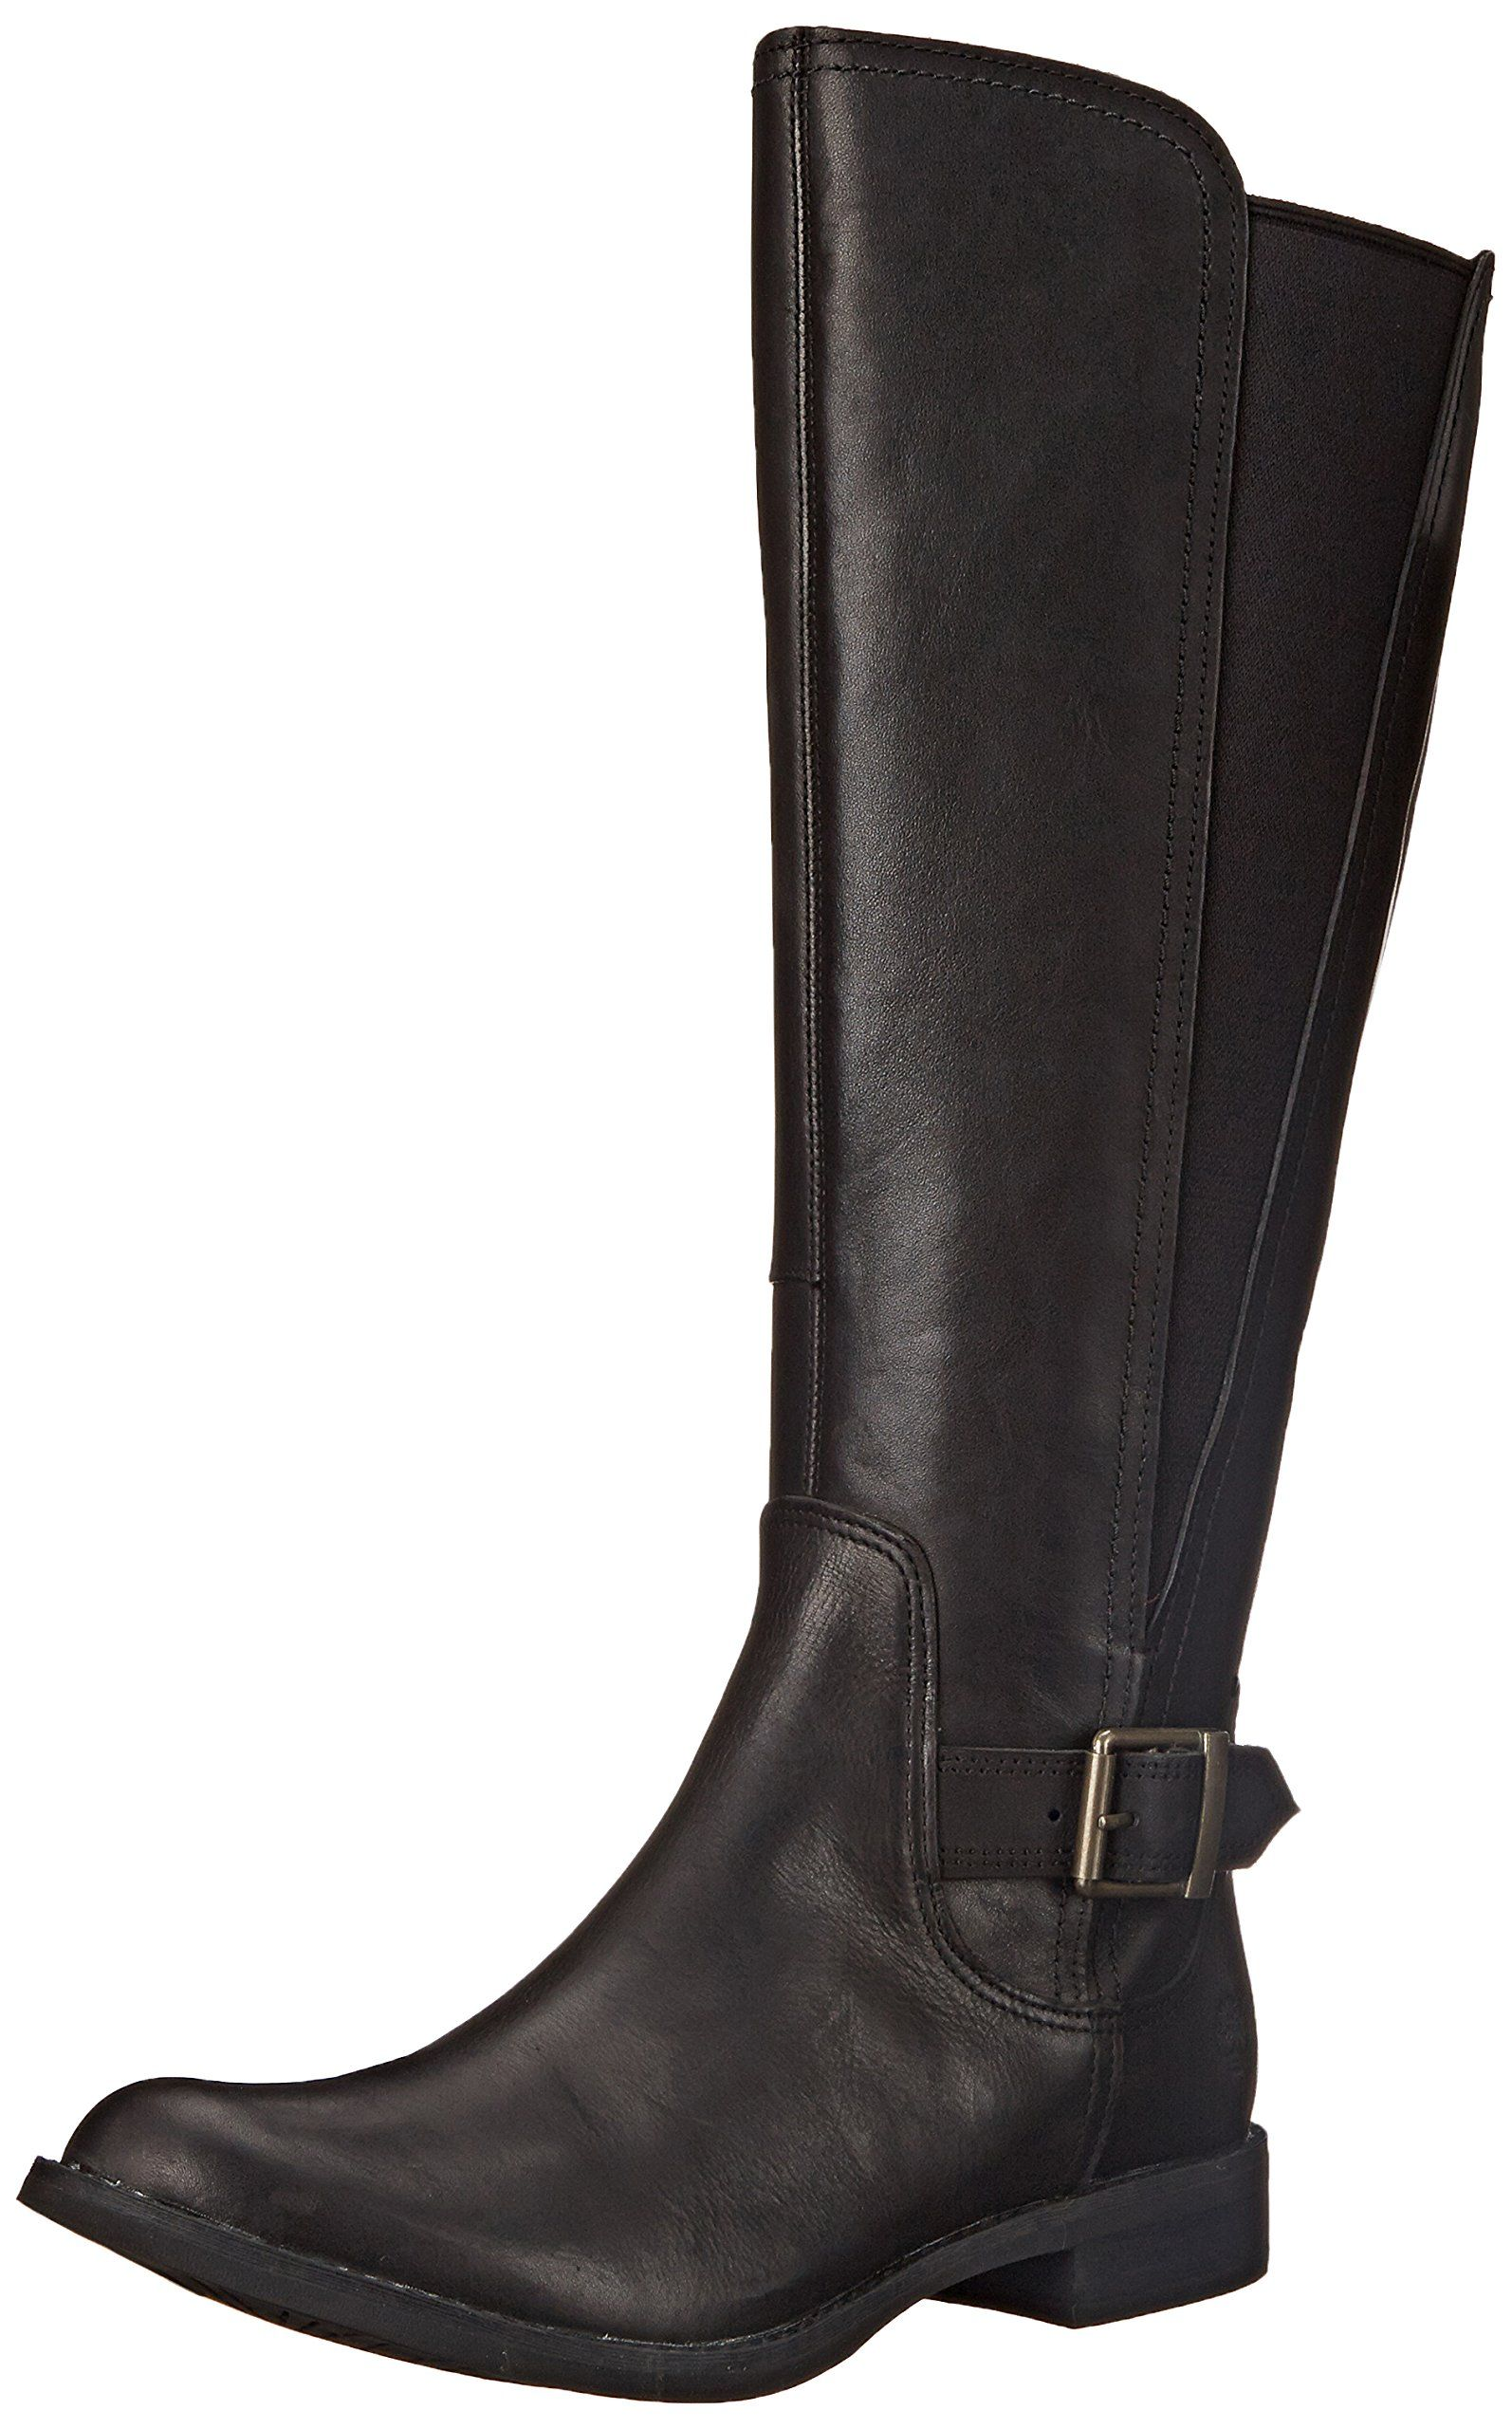 Timberland Womens Savin Hill All Fit Tall Boot Black Smooth